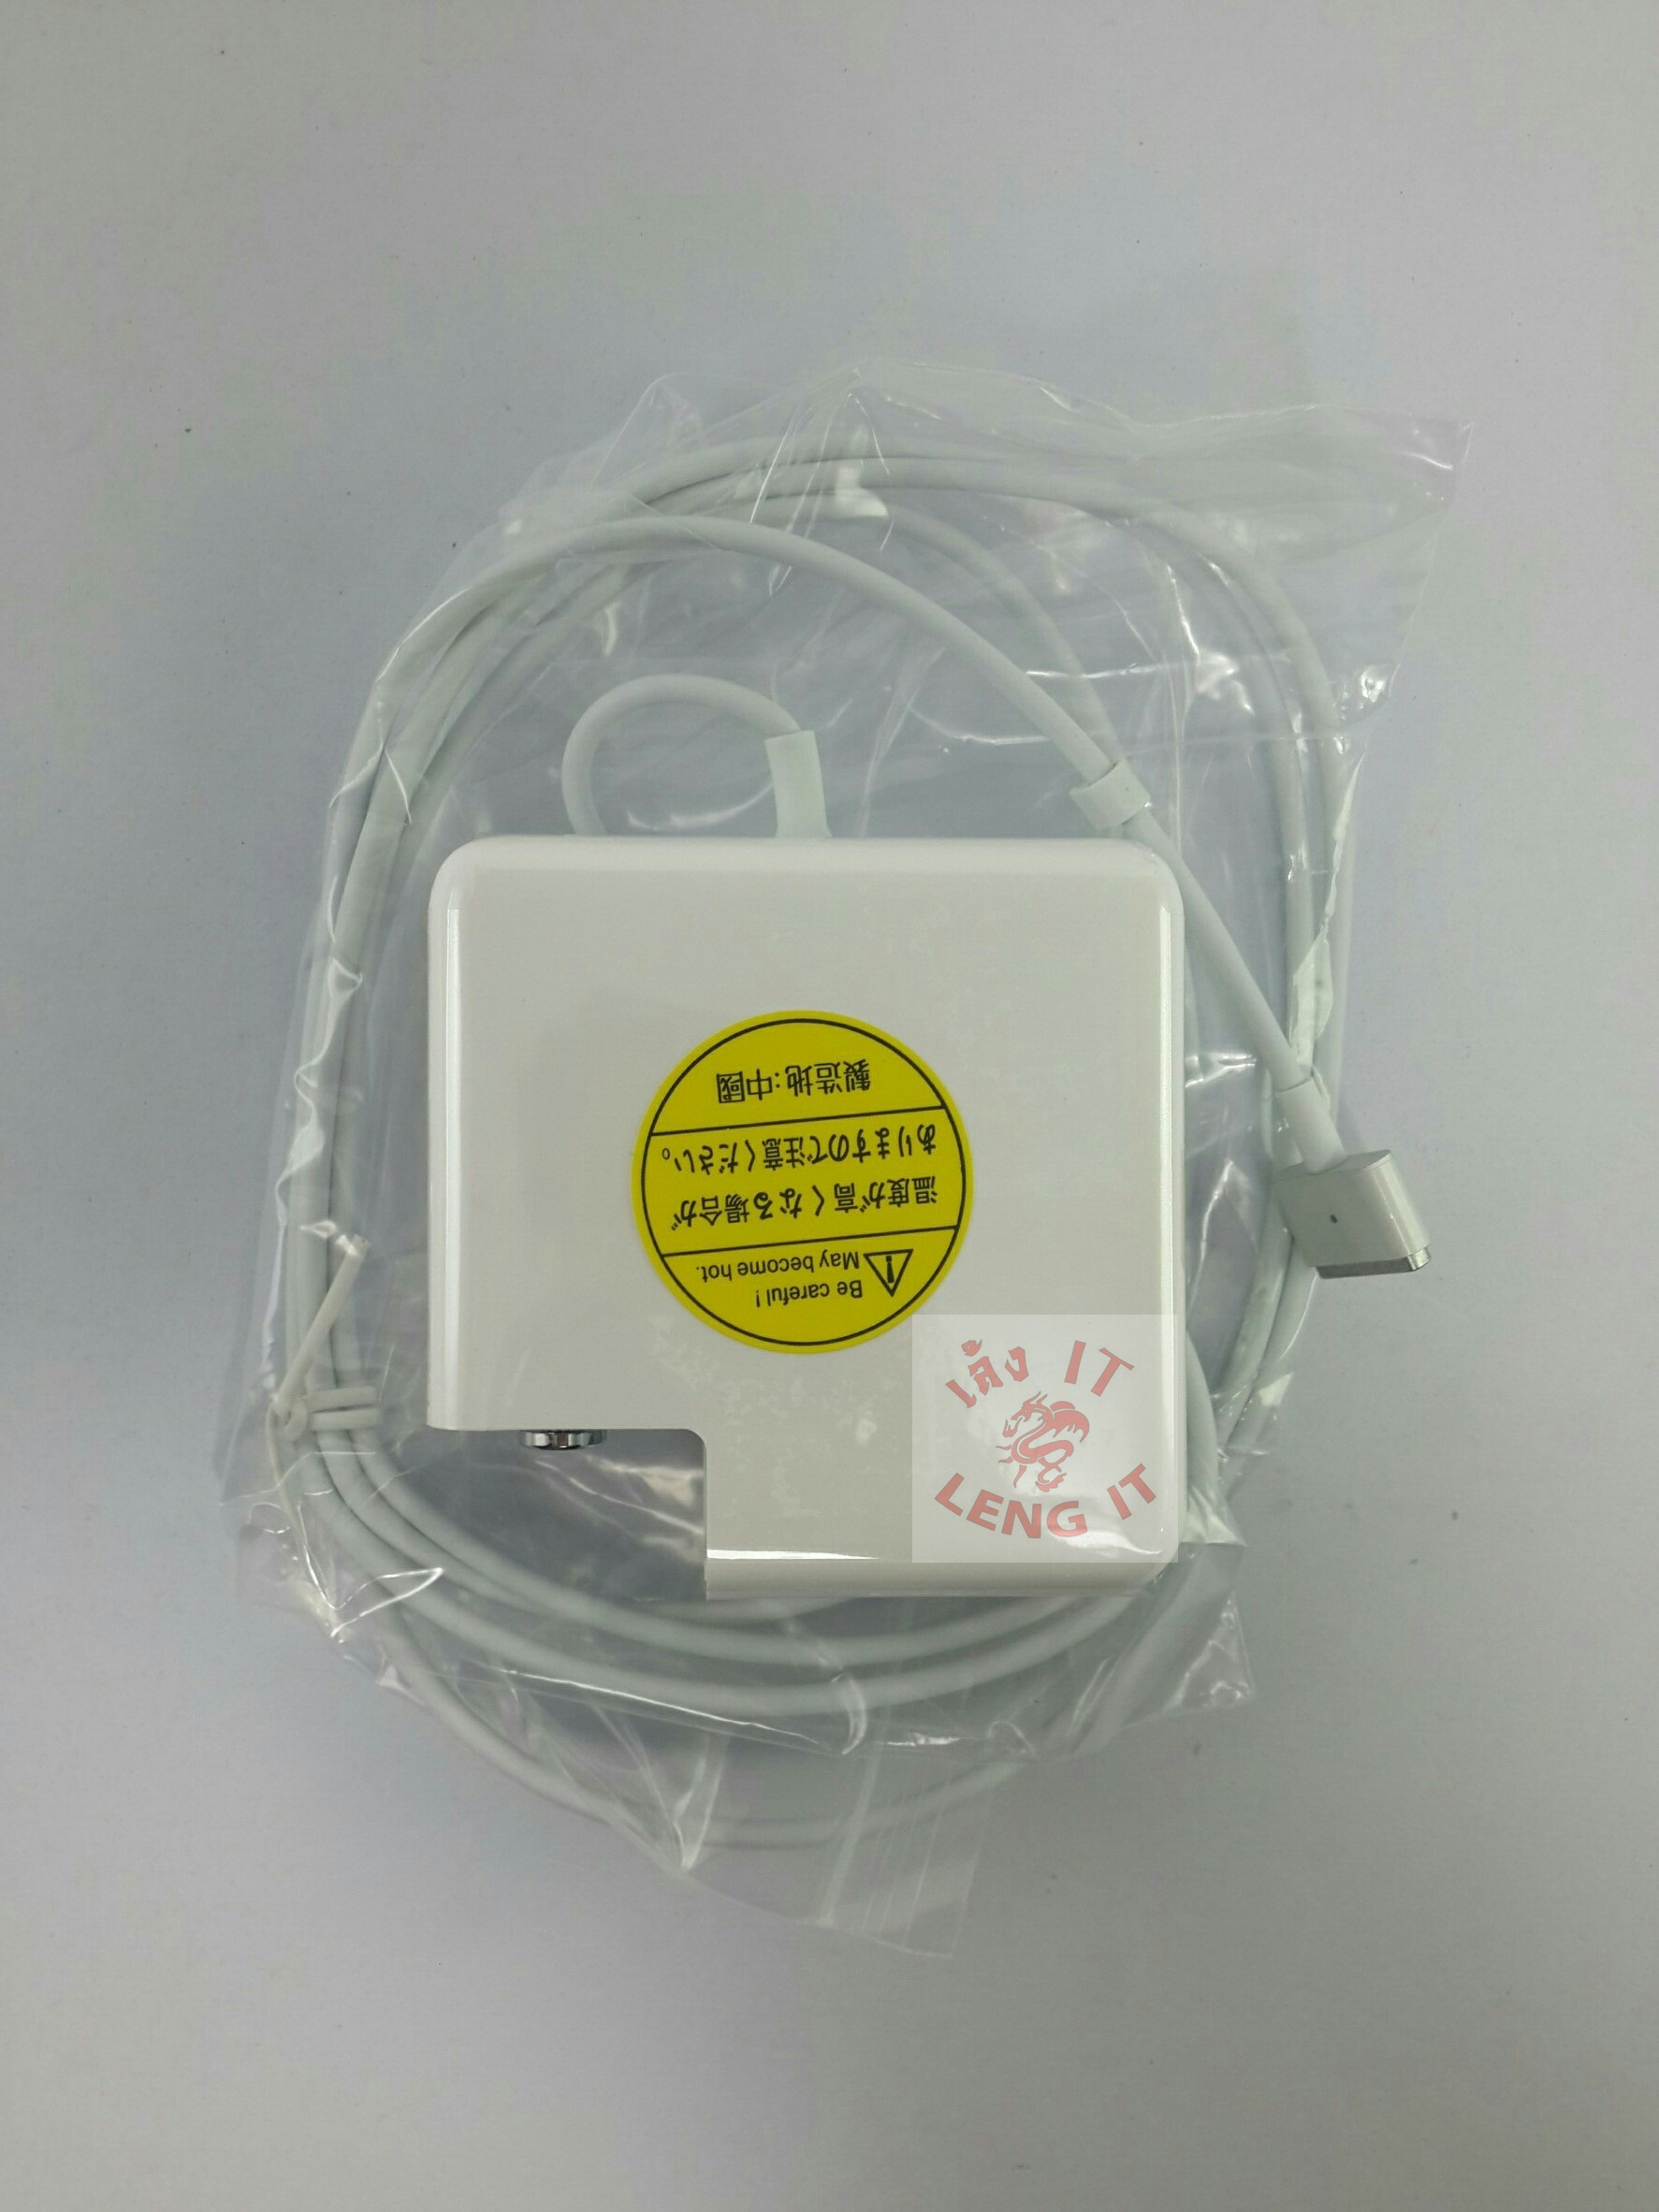 Adapter Mac 85 w safe 2 แท้